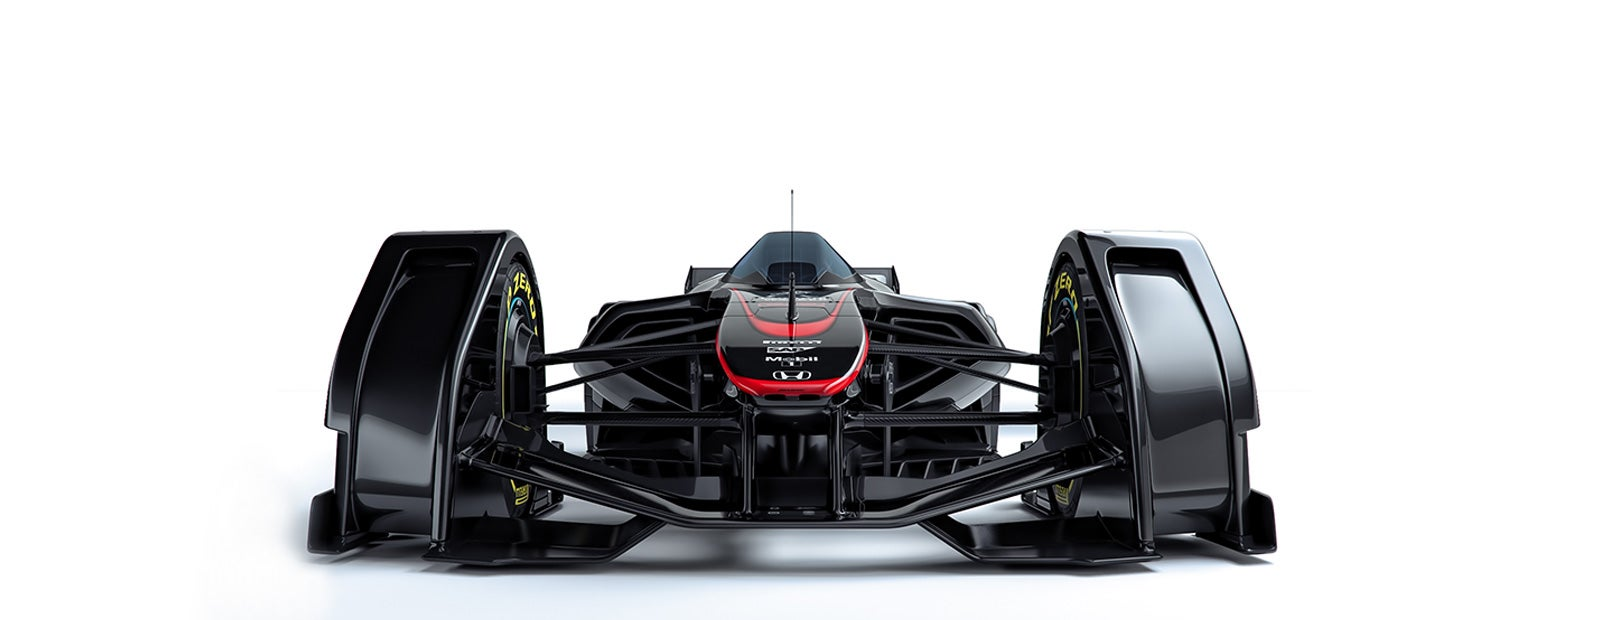 The Race Car Of The Future Is A Work Of Art